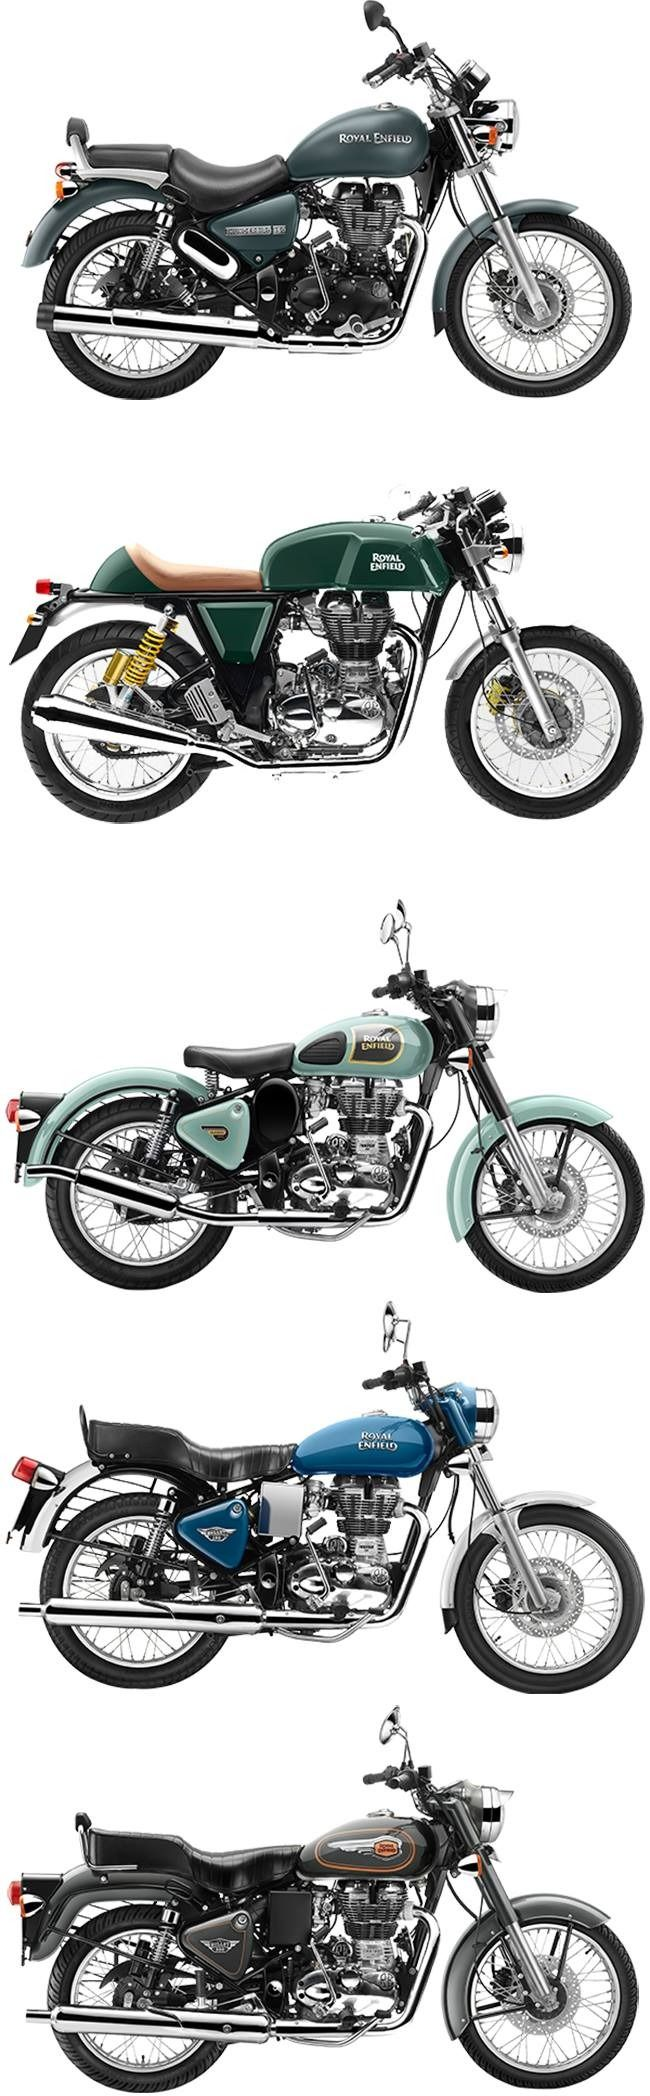 Royal Enfield launched new color scheme for its unique and high performer bike ‪#‎RoyalEnfield‬ ‪#‎ContinentalGT‬.